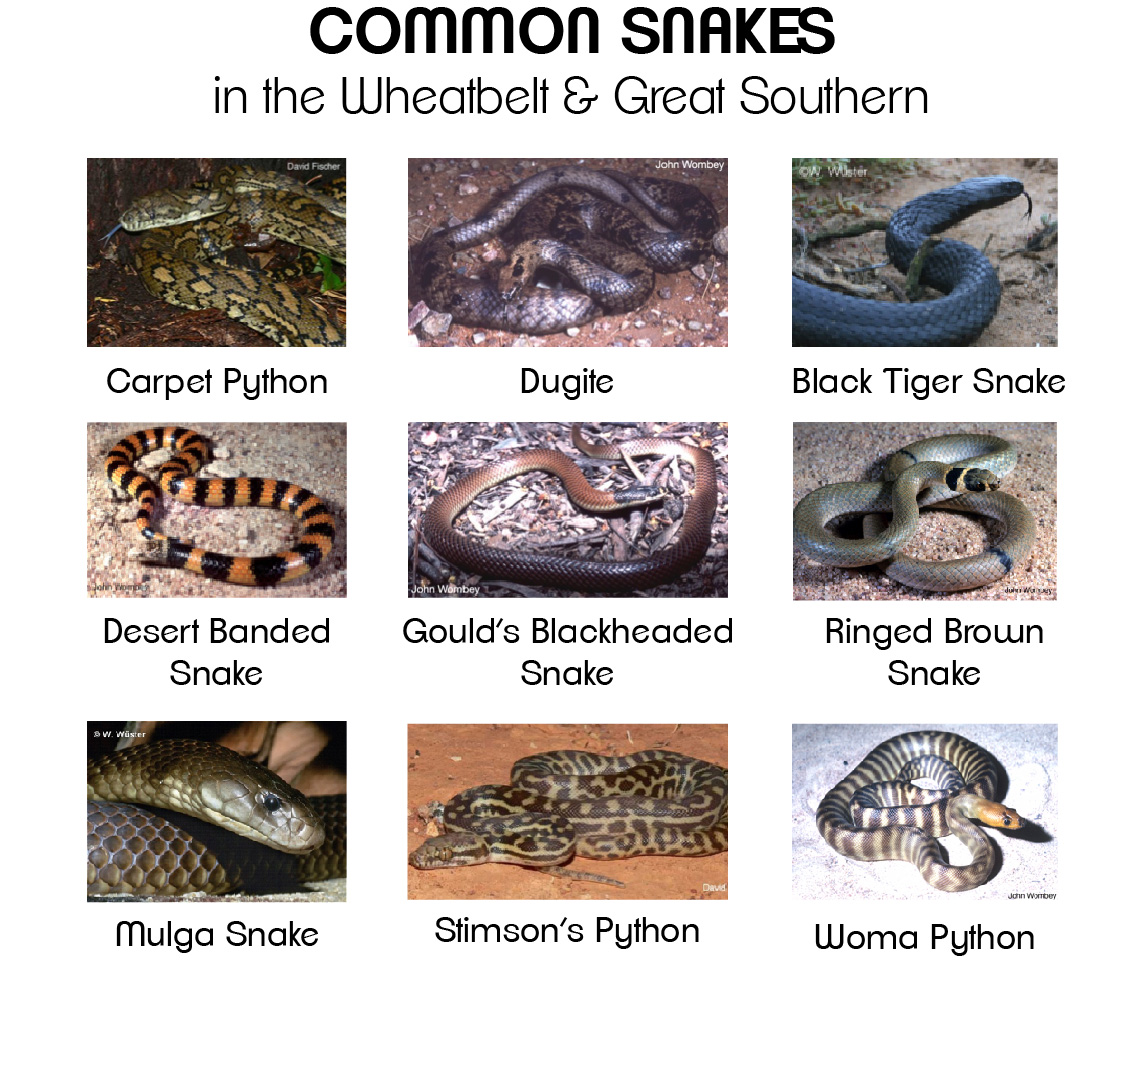 commonsnakes